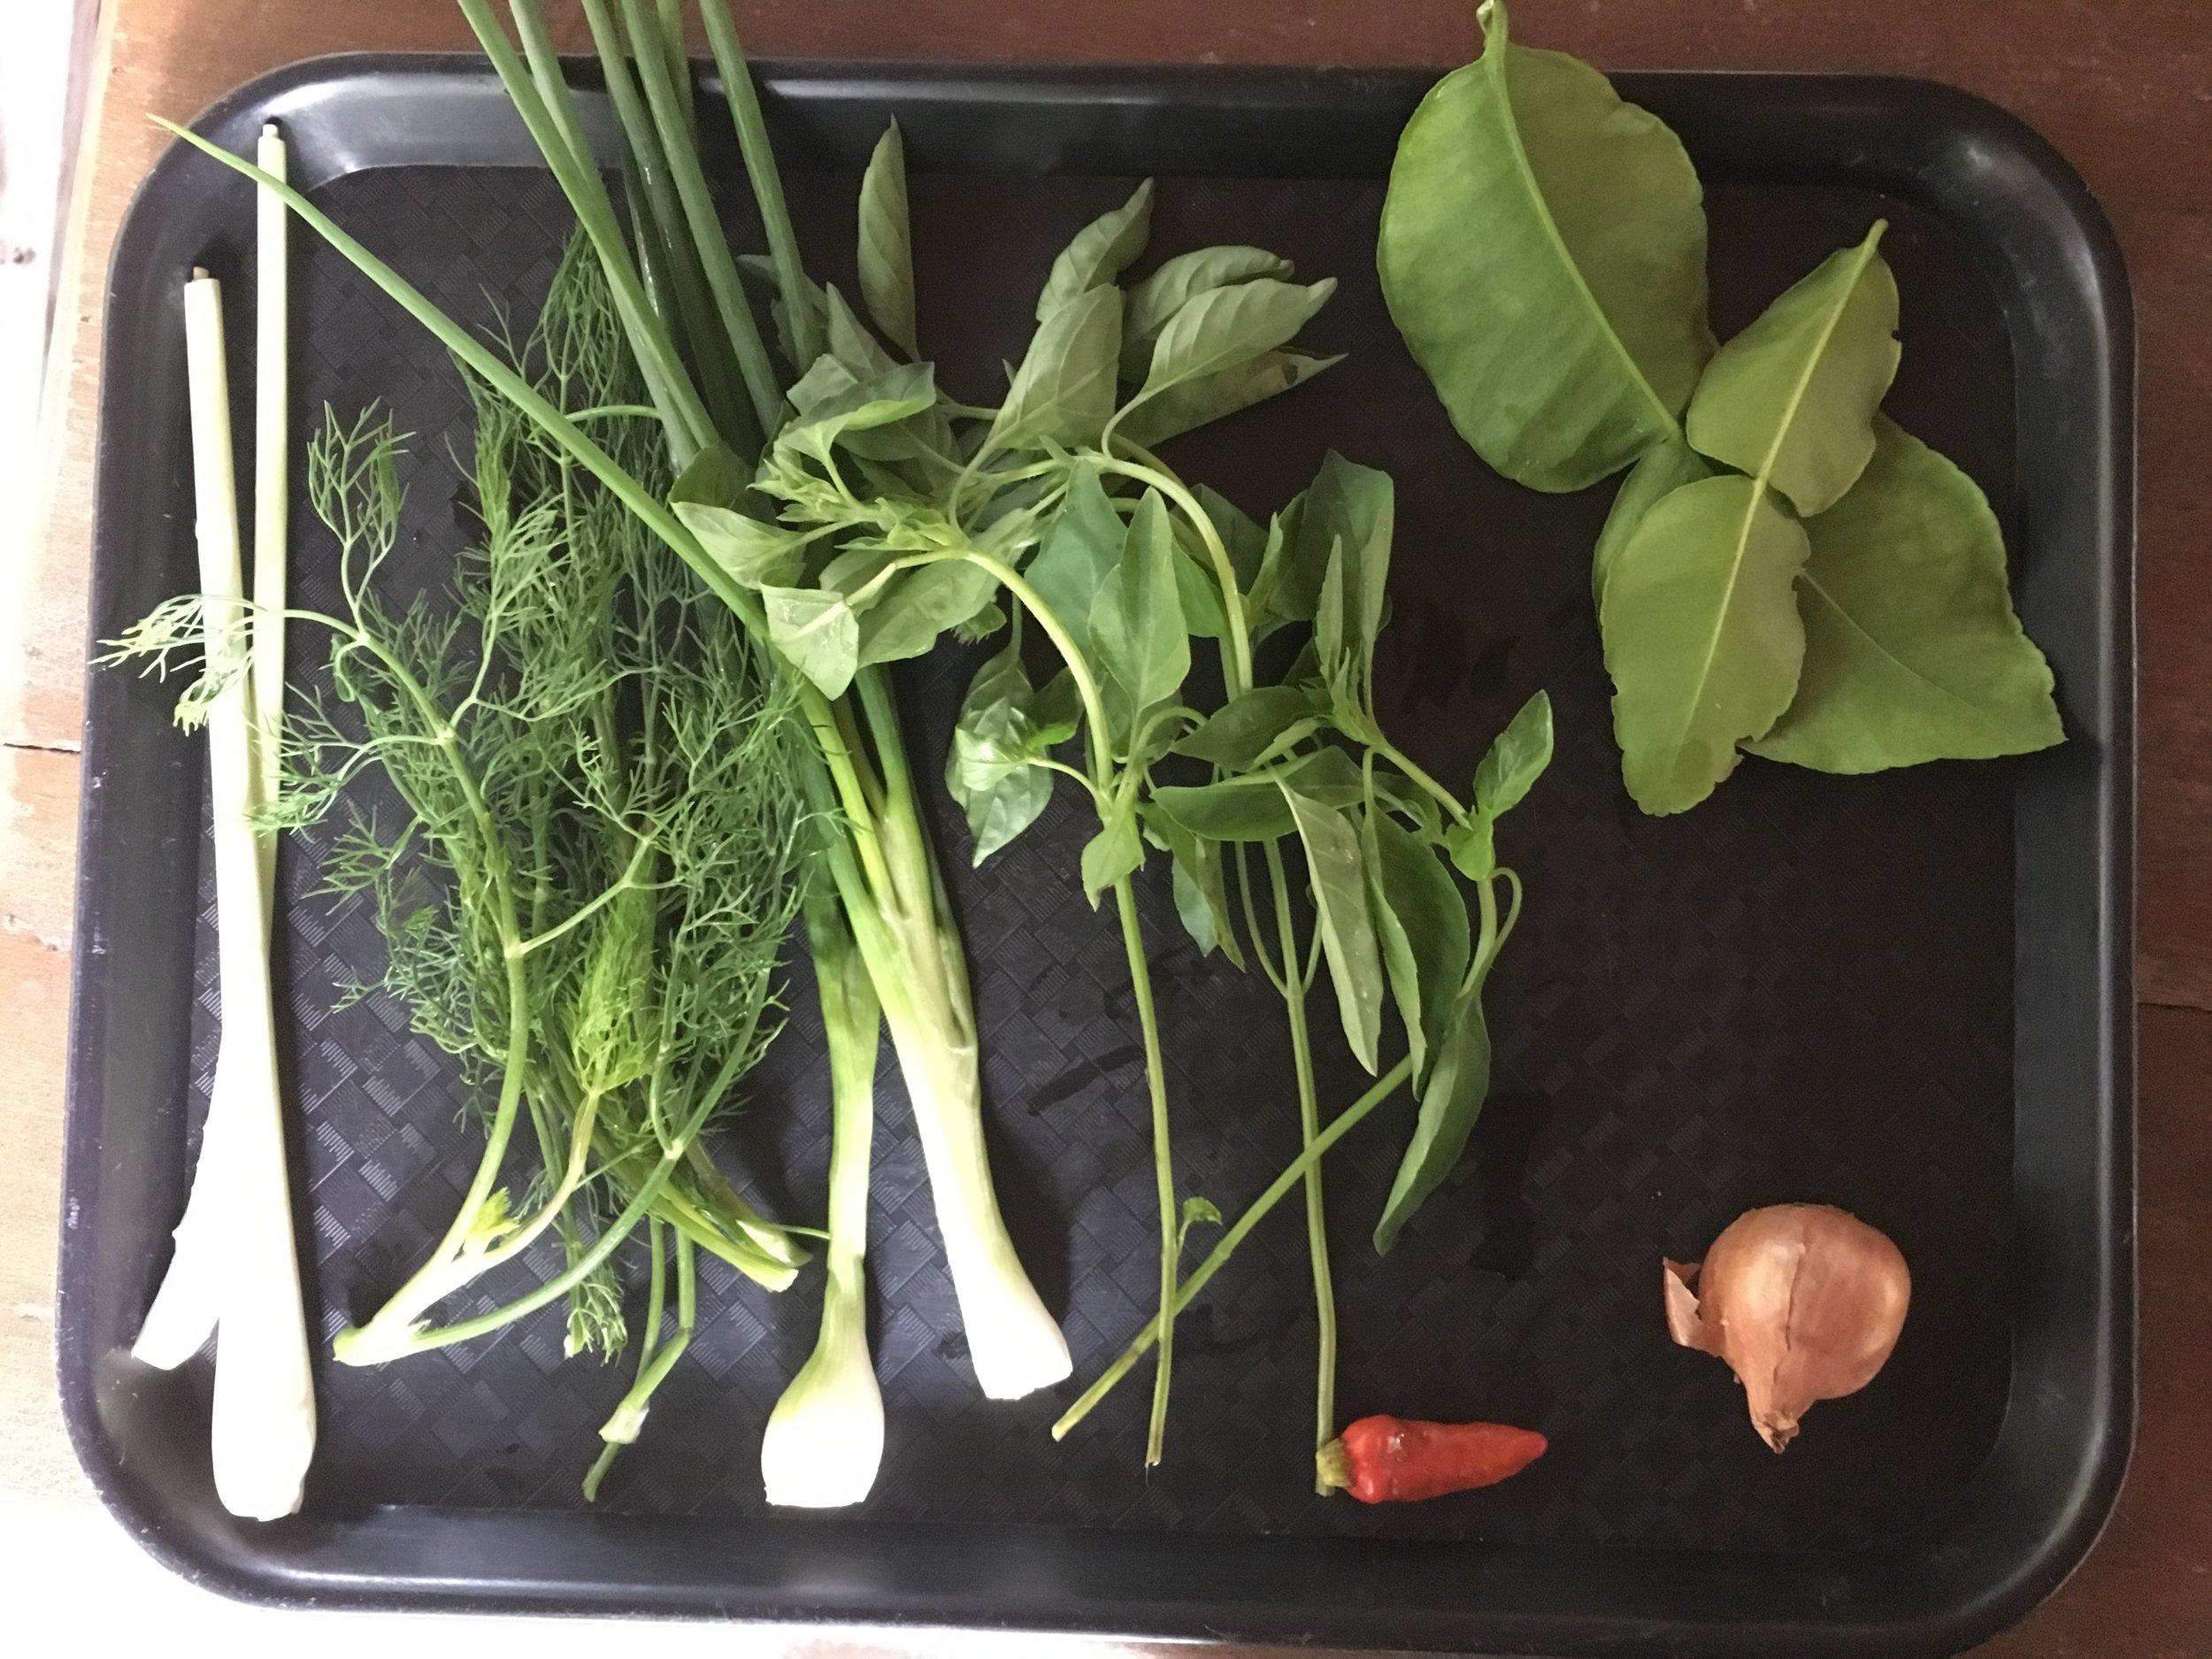 The flavors of Laos: chili peppers, lemongrass, shallots, kefir leaves, Thai basil, and dill